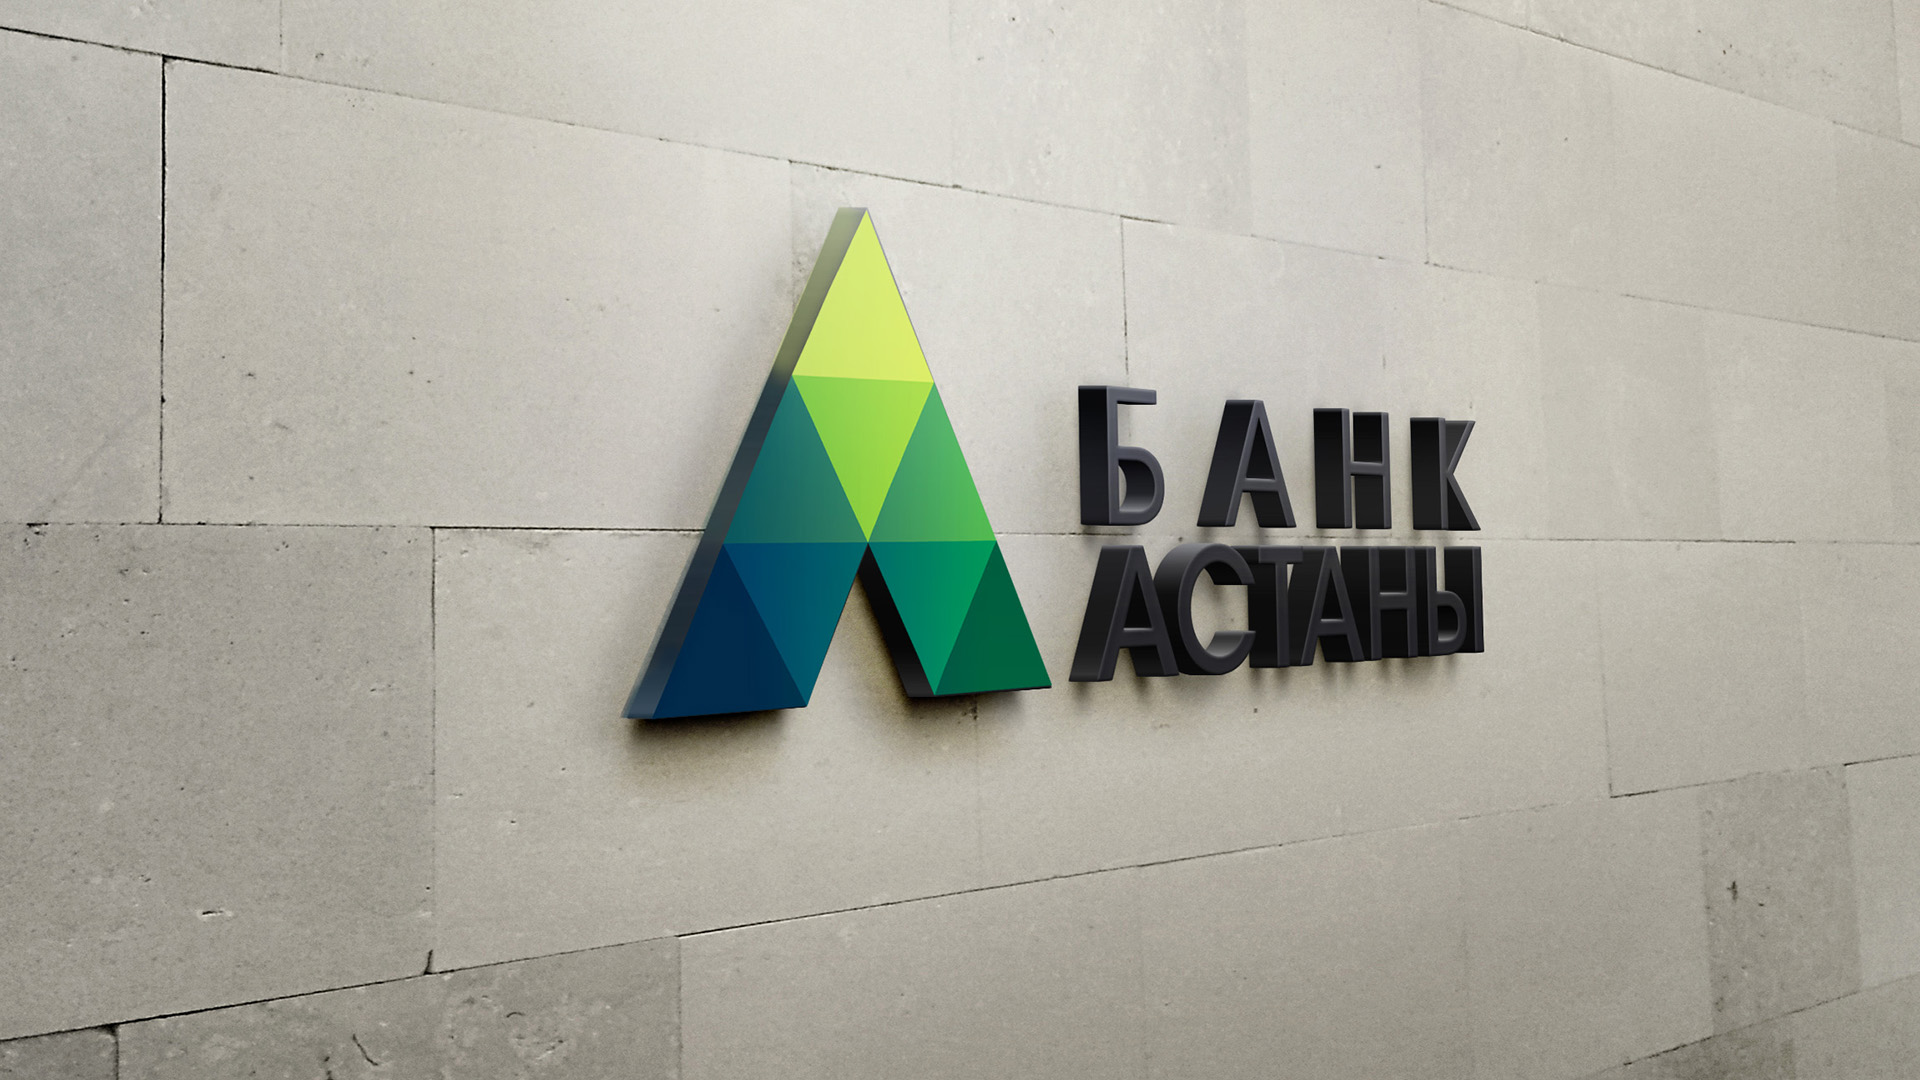 Bank of Astana